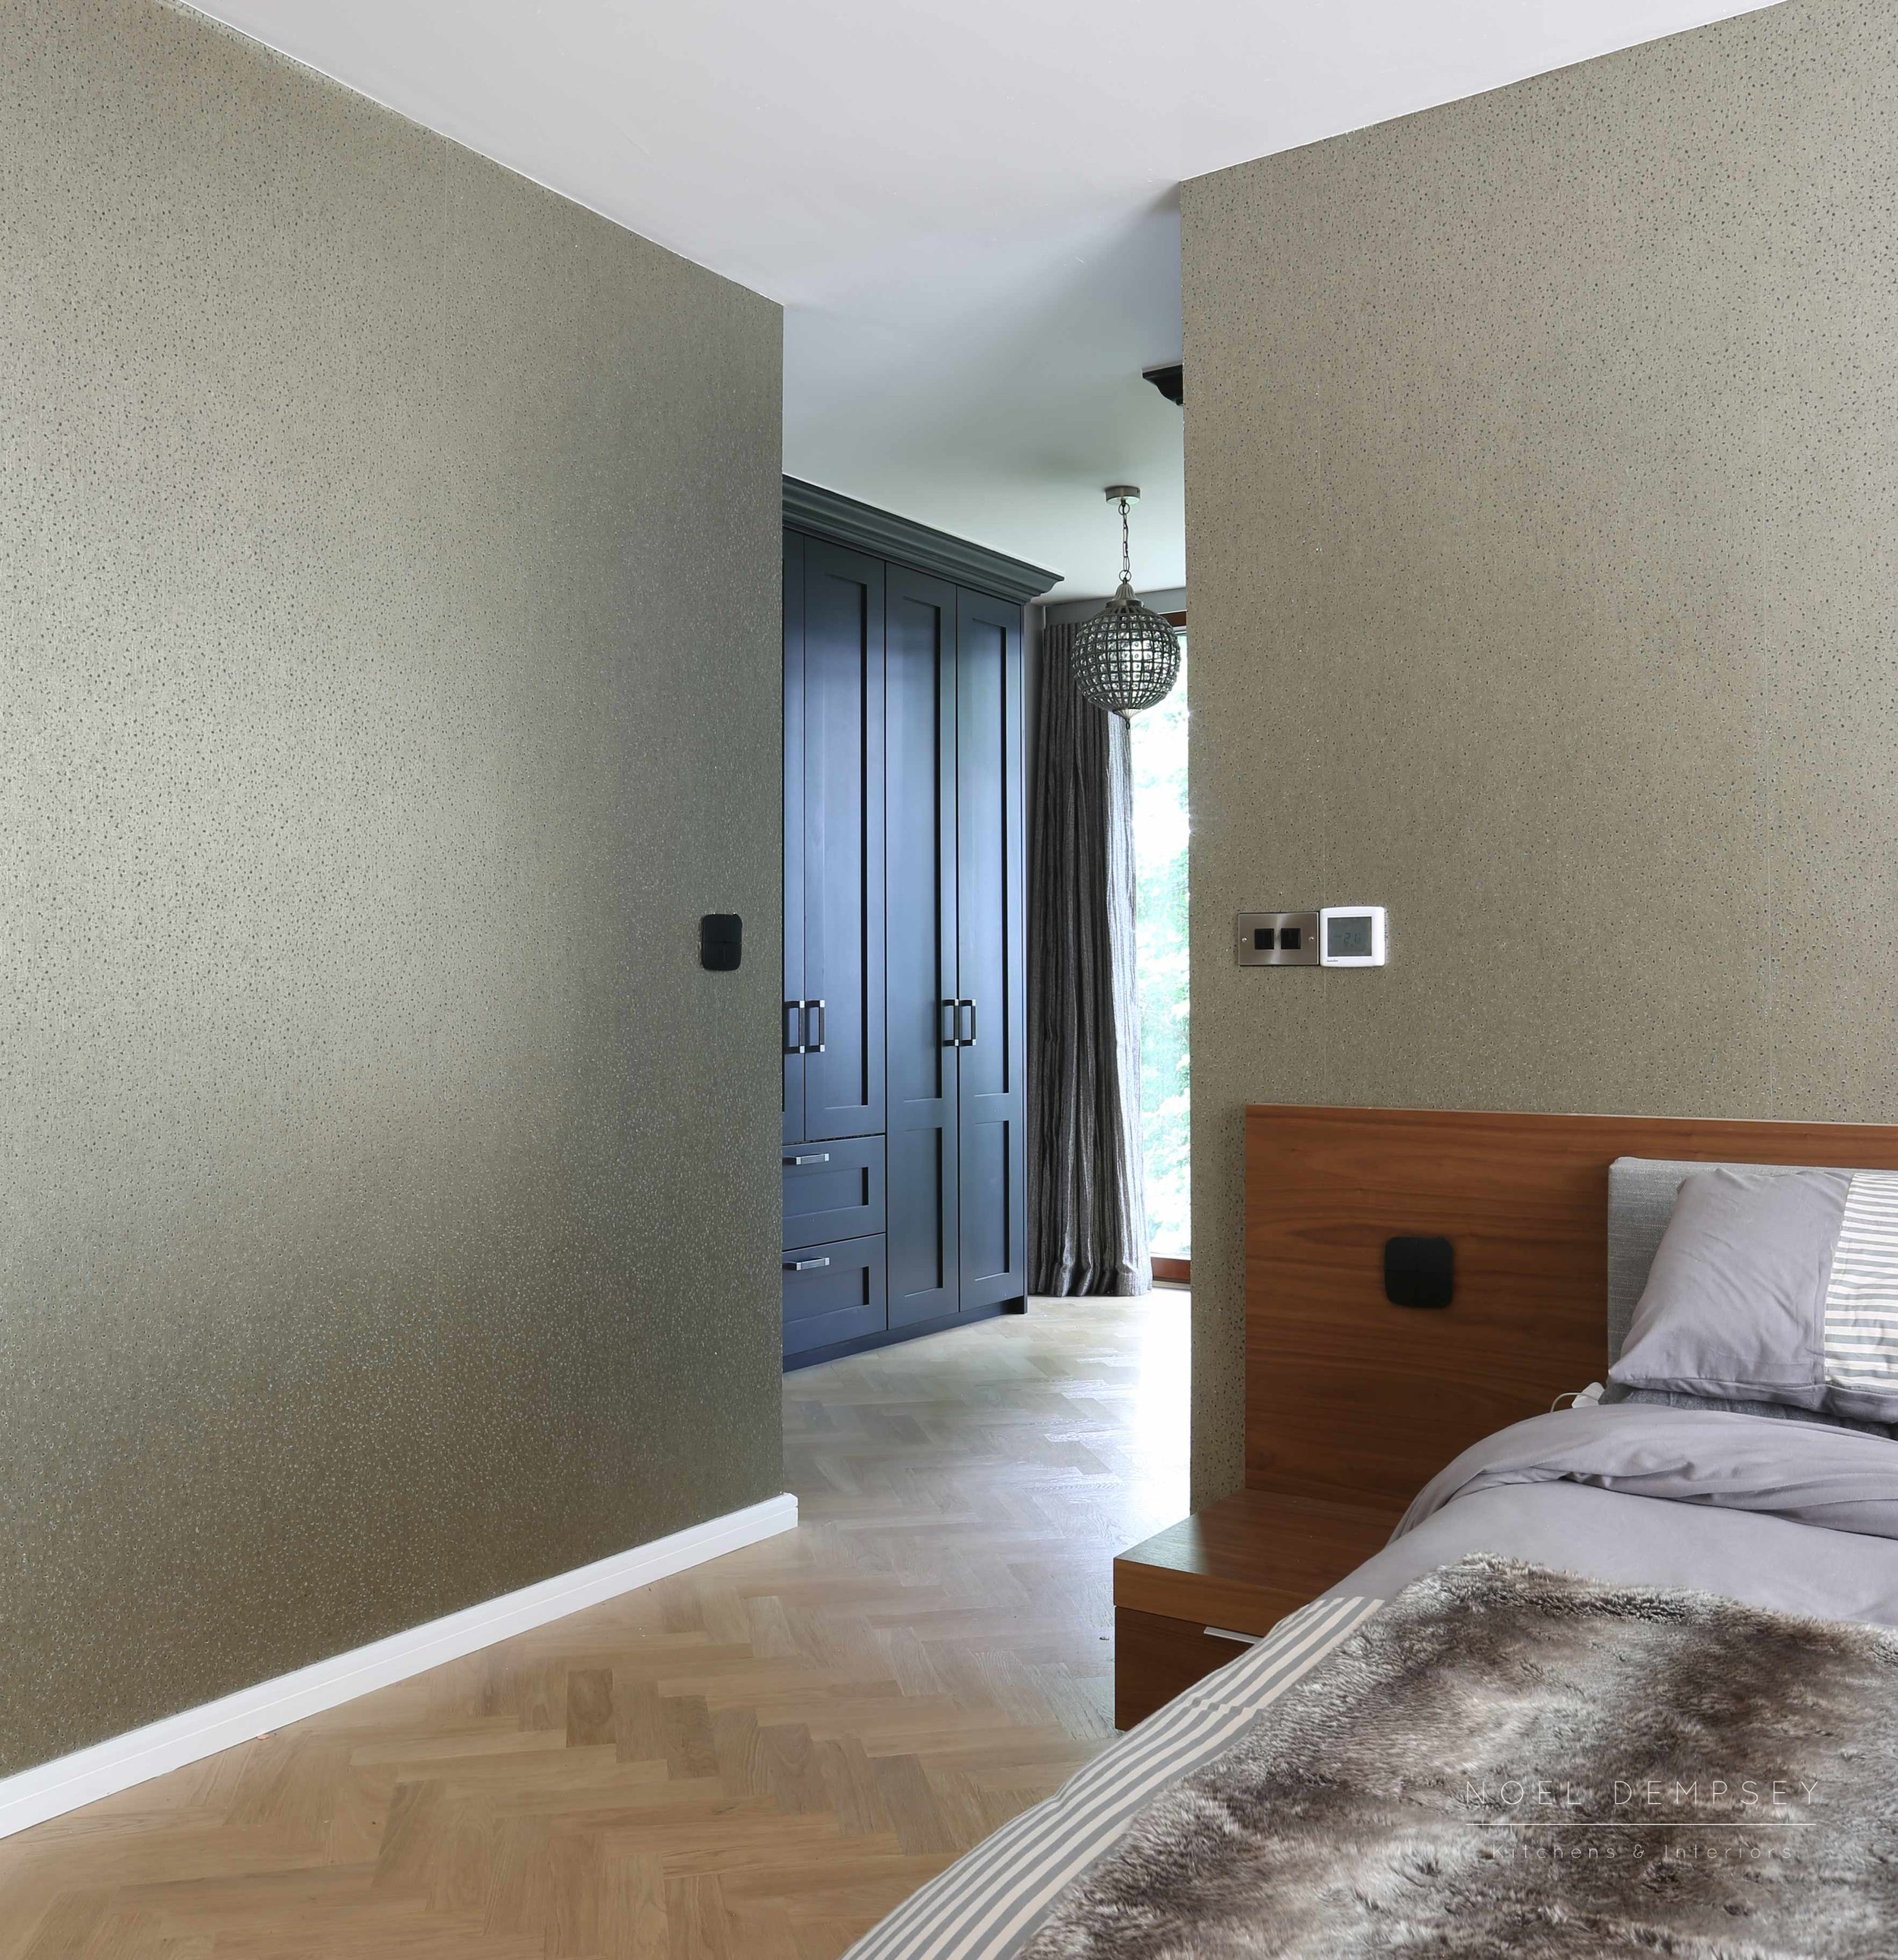 Bespoke bedroom by Noel Dempsey